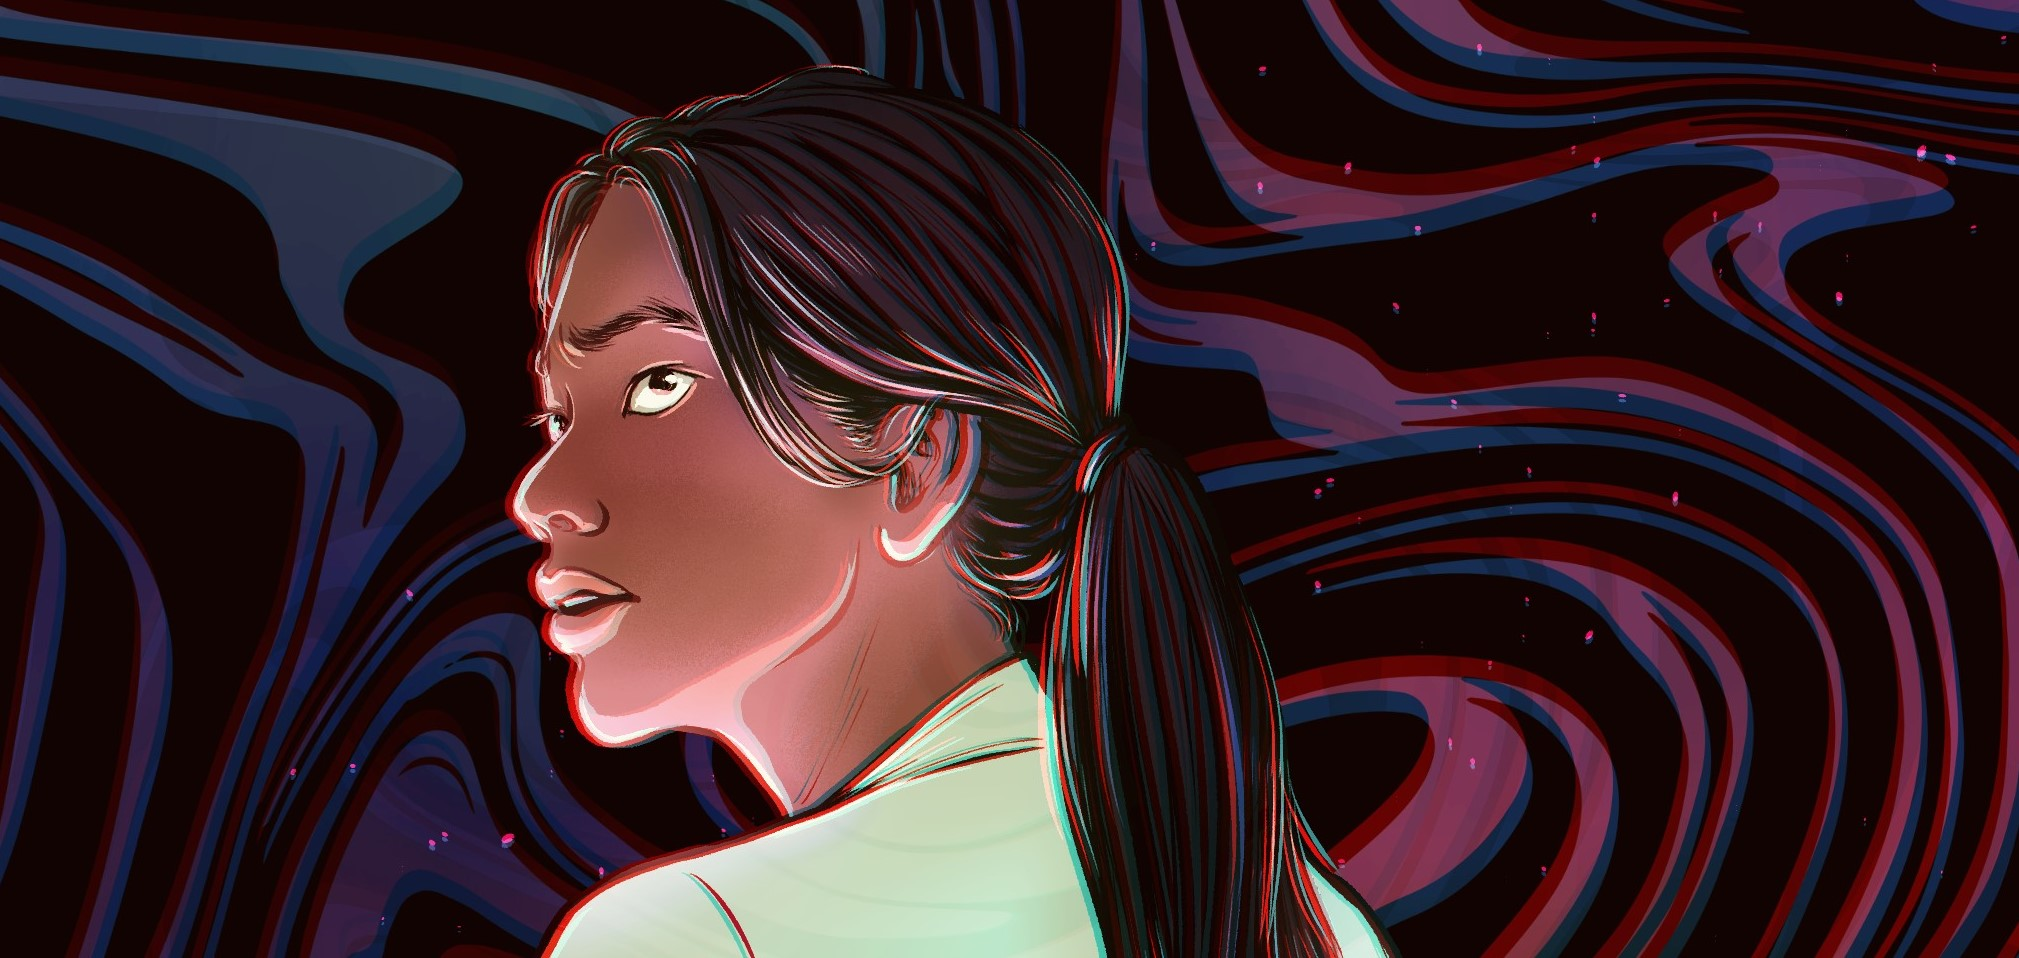 Close up of the previous illustration, on Yasira's face: looking back and up over her shoulder, concerned, and lit from below.